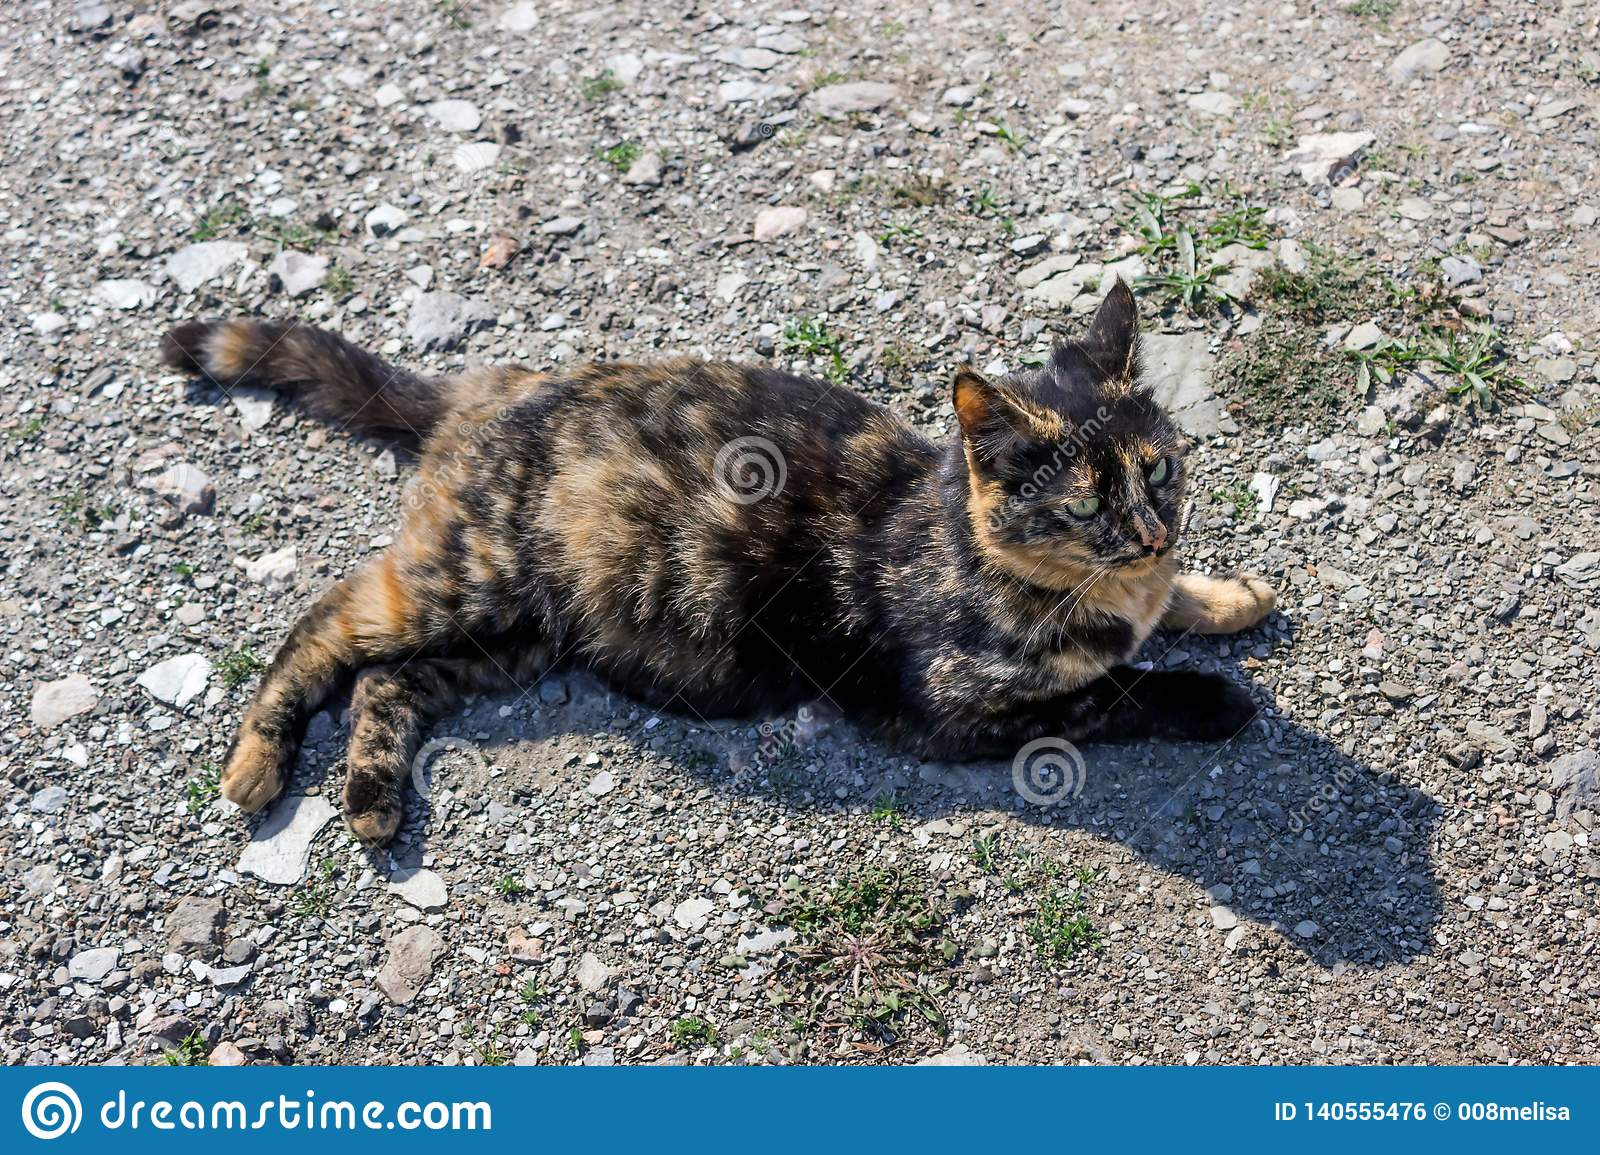 Beautiful tortoiseshell cat, pregnant, with a big belly, lying on the ground. Concept- sterilization of animals, care for Pets.